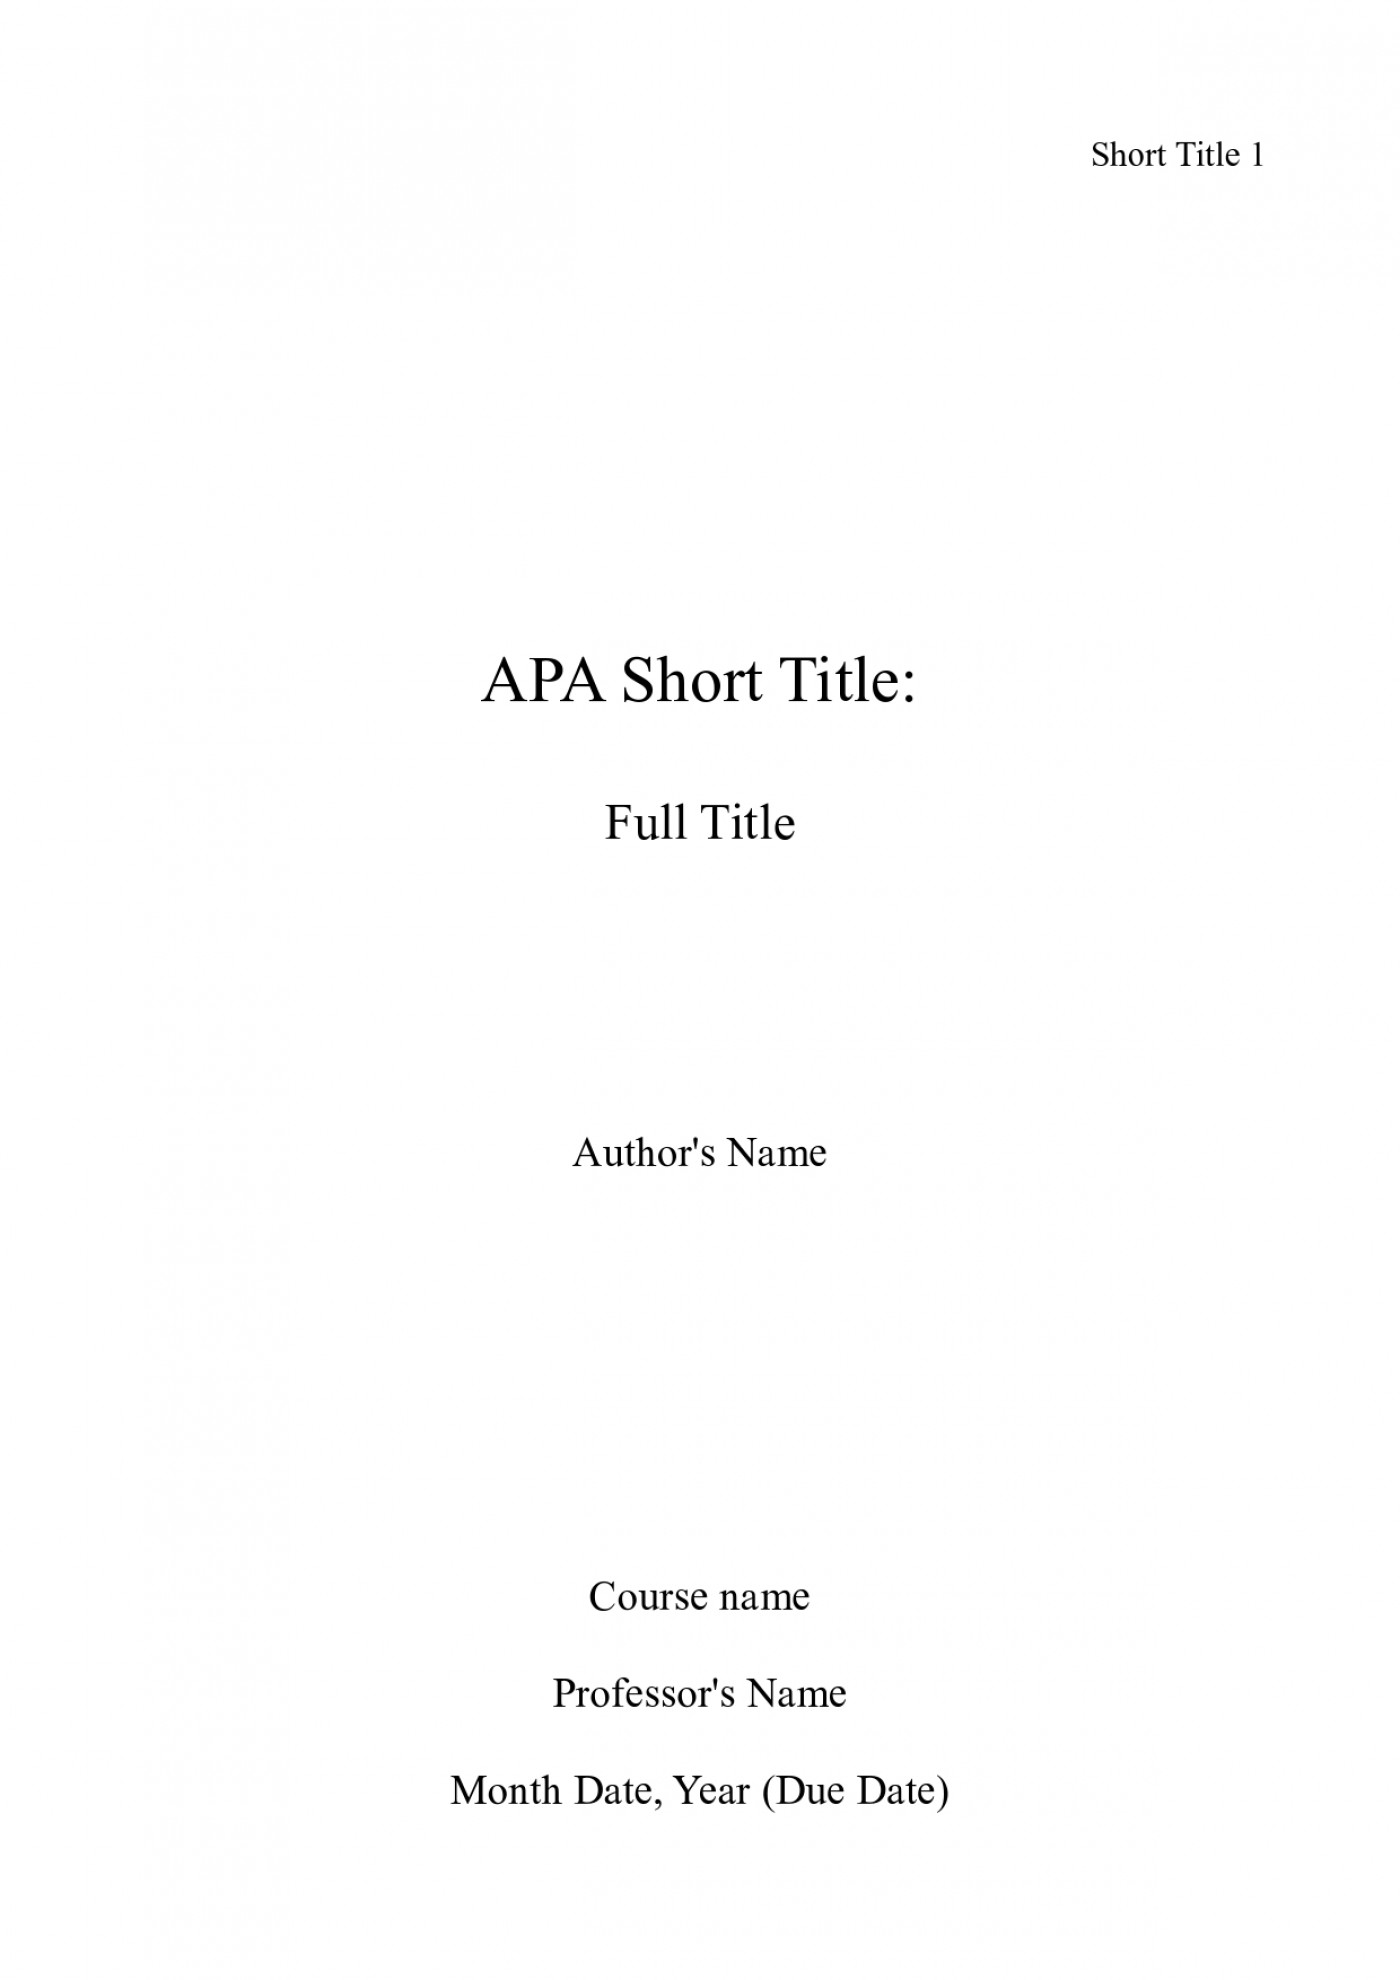 001 Essay Example How To Write Cover Page For An Apa Title Awesome A Contents Bibliography 1400